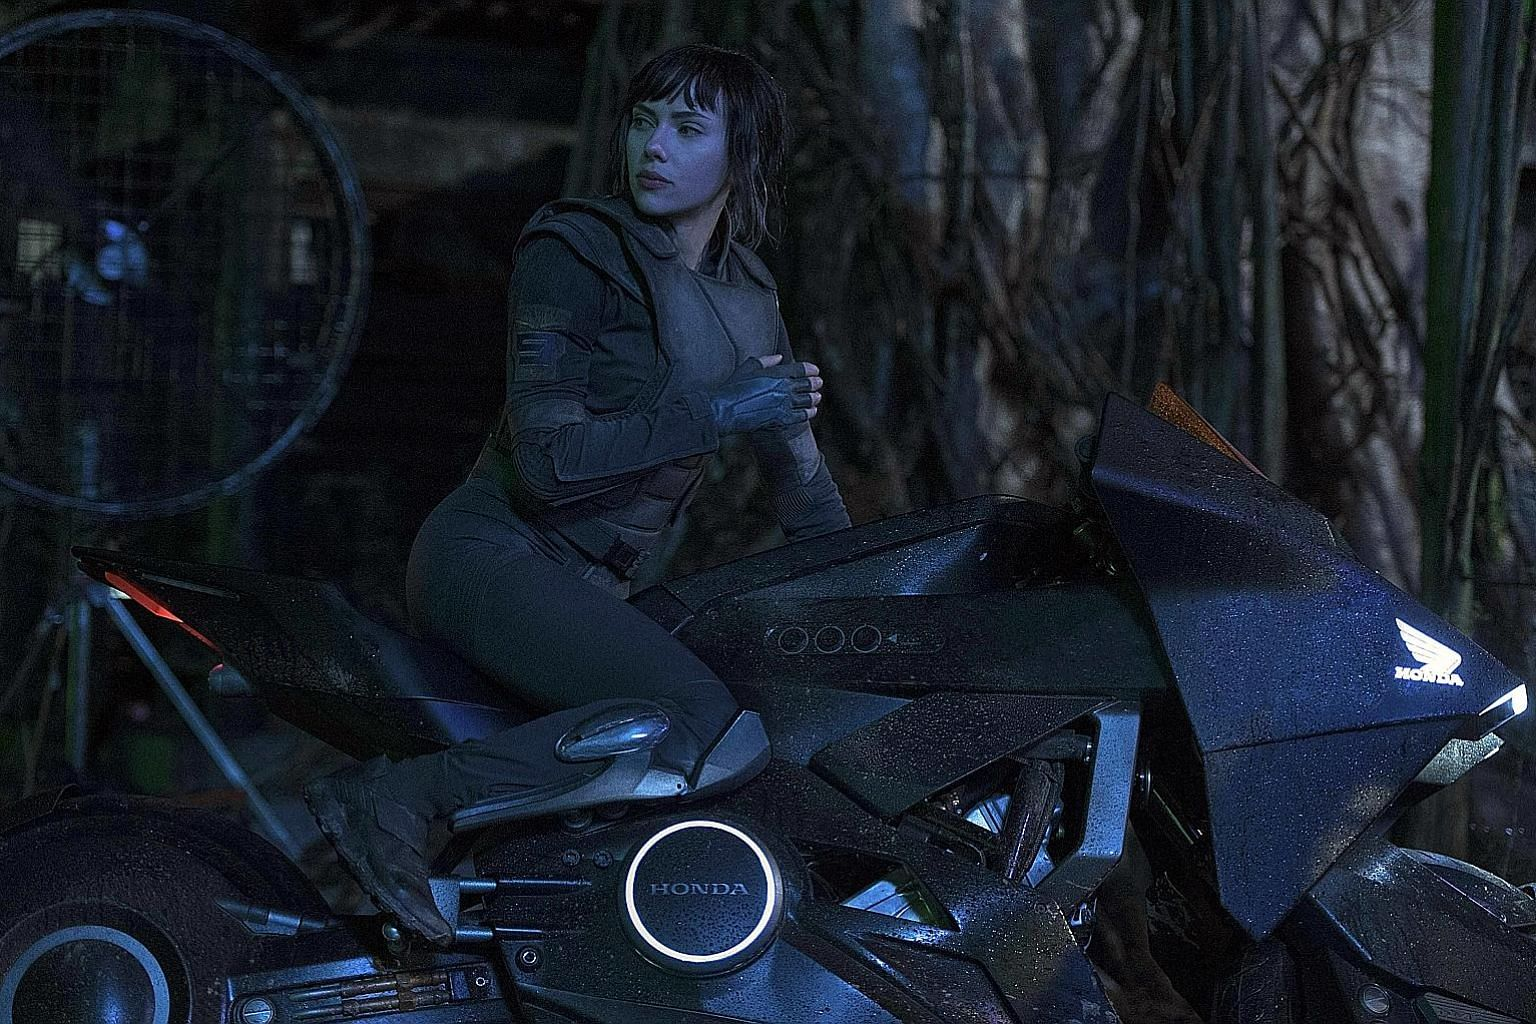 Scarlett Johansson plays a special ops human- cyborg hybrid in Ghost In The Shell.